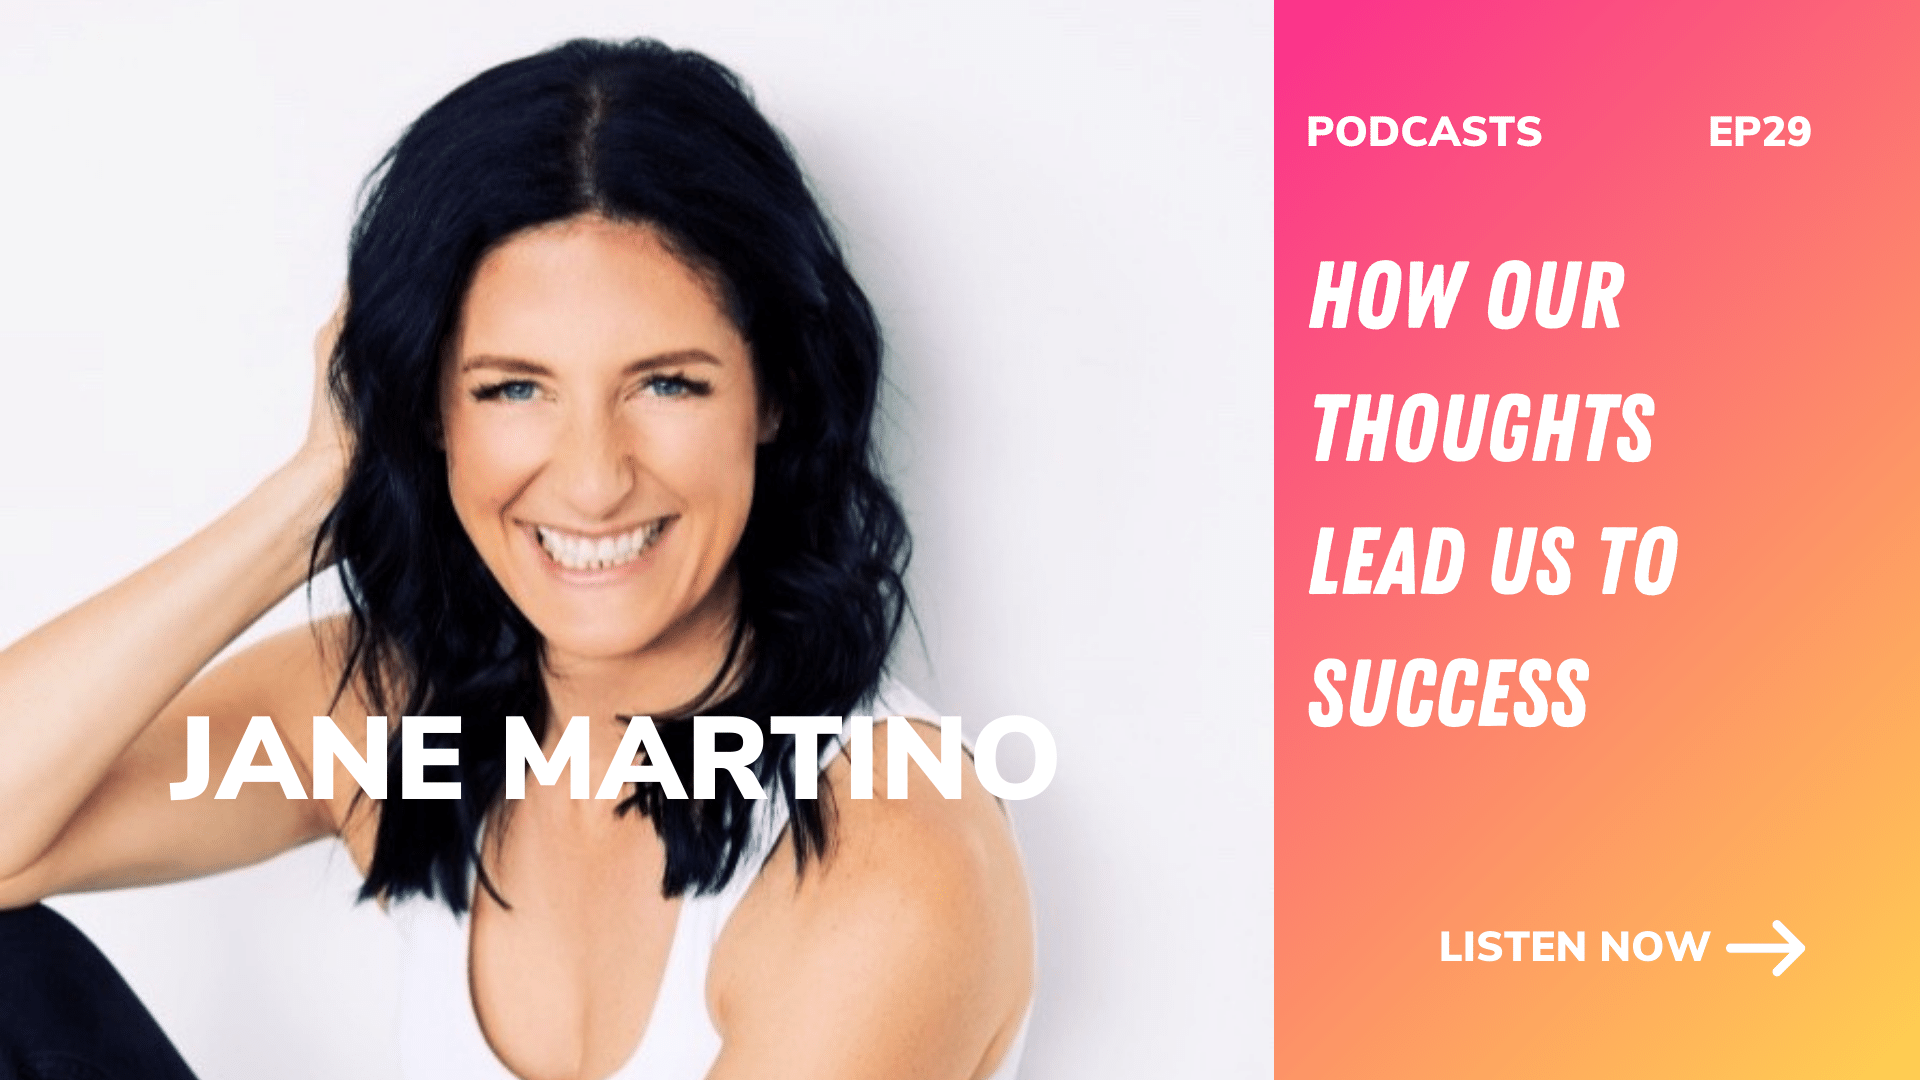 Jane Martino, smiling mind podcast interview